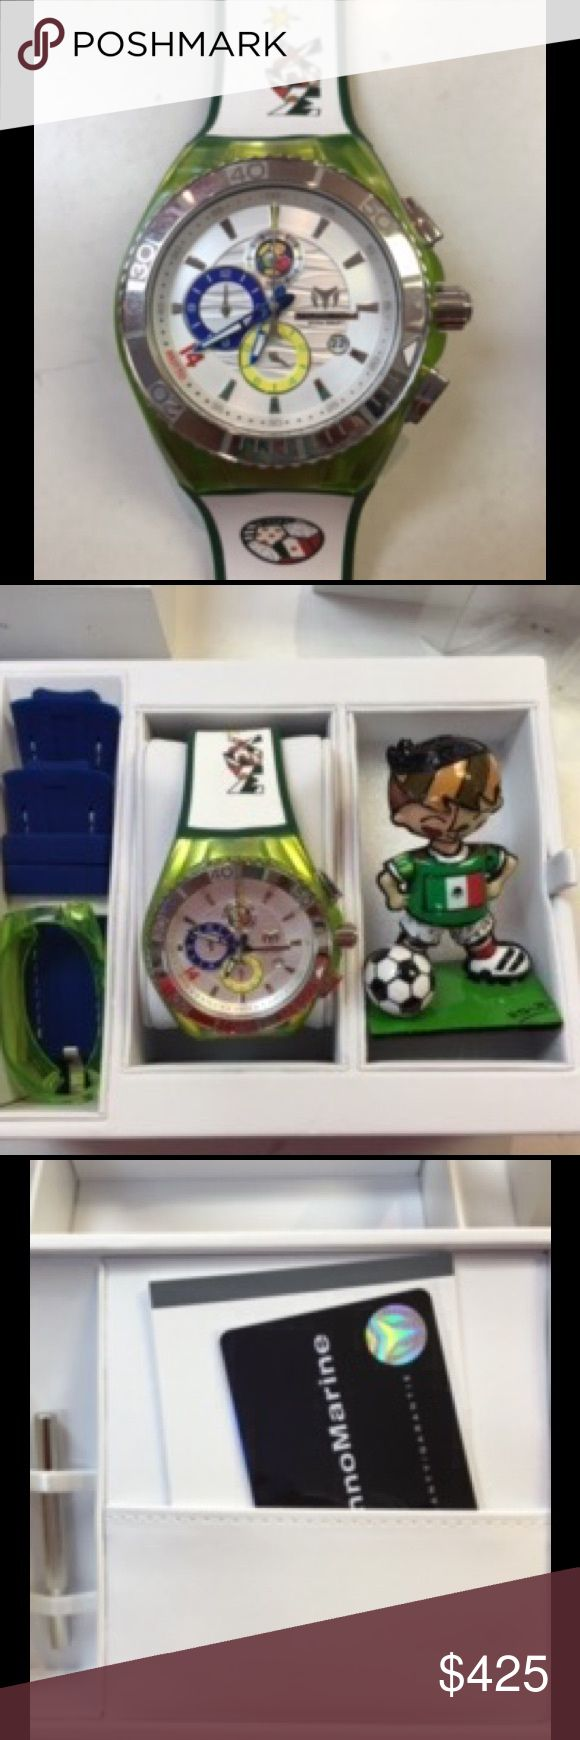 Technomarine Britto Mexico chronograph watch Wear your country colors ( for copa America, Olympics and rio 2016)) This watch is water resistant up to 660 feet. Has 2 bands and comes with little britto figurine. Bezel diameter is 42mm. Stainless steel. Technomarine Accessories Watches